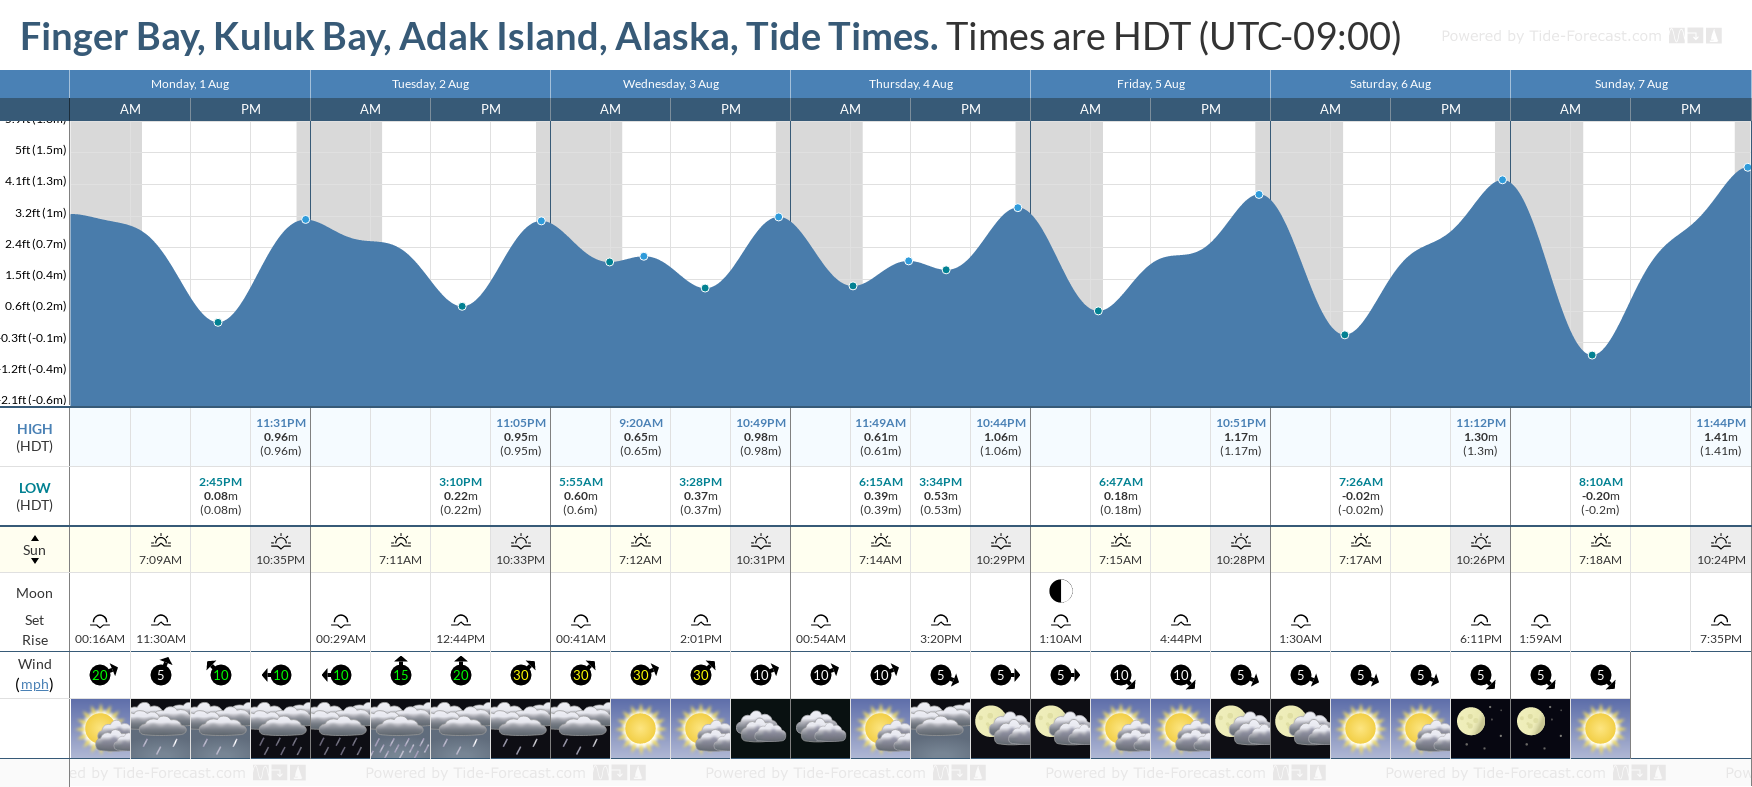 Finger Bay, Kuluk Bay, Adak Island, Alaska Tide Chart including high and low tide tide times for the next 7 days